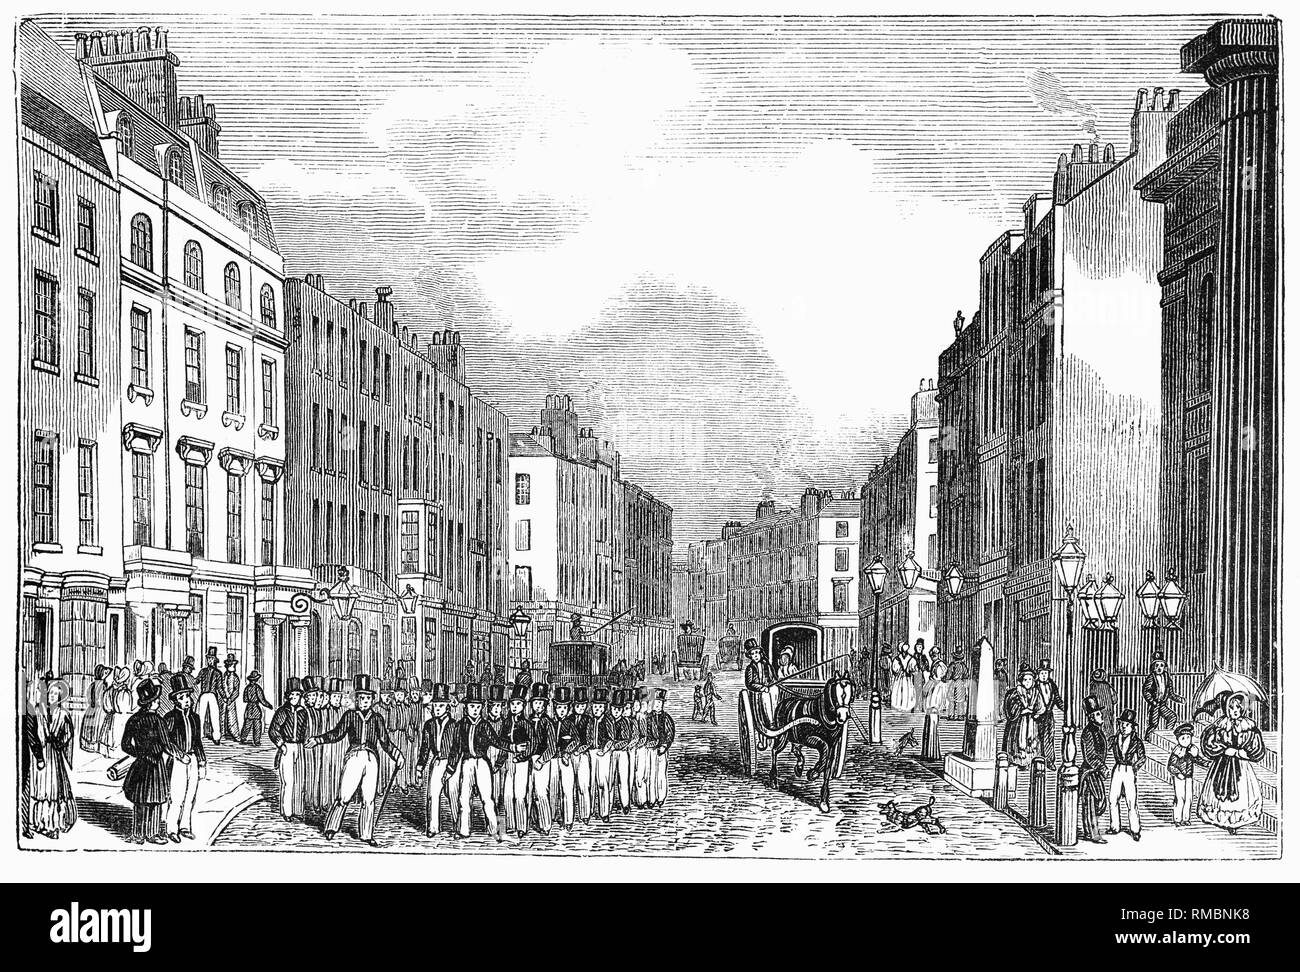 Marching Police in Bow Street, London. Formed from the Bow Street Runners founded in 1749 by magistrate Henry Fielding but after the establishment of the Metropolitan Police in 1829, the policing responsibilities of the Bow Street magistrates were very considerably diminished. The Bow Street patrol was gradually absorbed into the new police force and Bow Street was left with only the Runners. In 1834 a parliamentary committee recommended that the Bow Street men and constables should be incorporated with the Metropolitan Police as soon as possible. - Stock Image